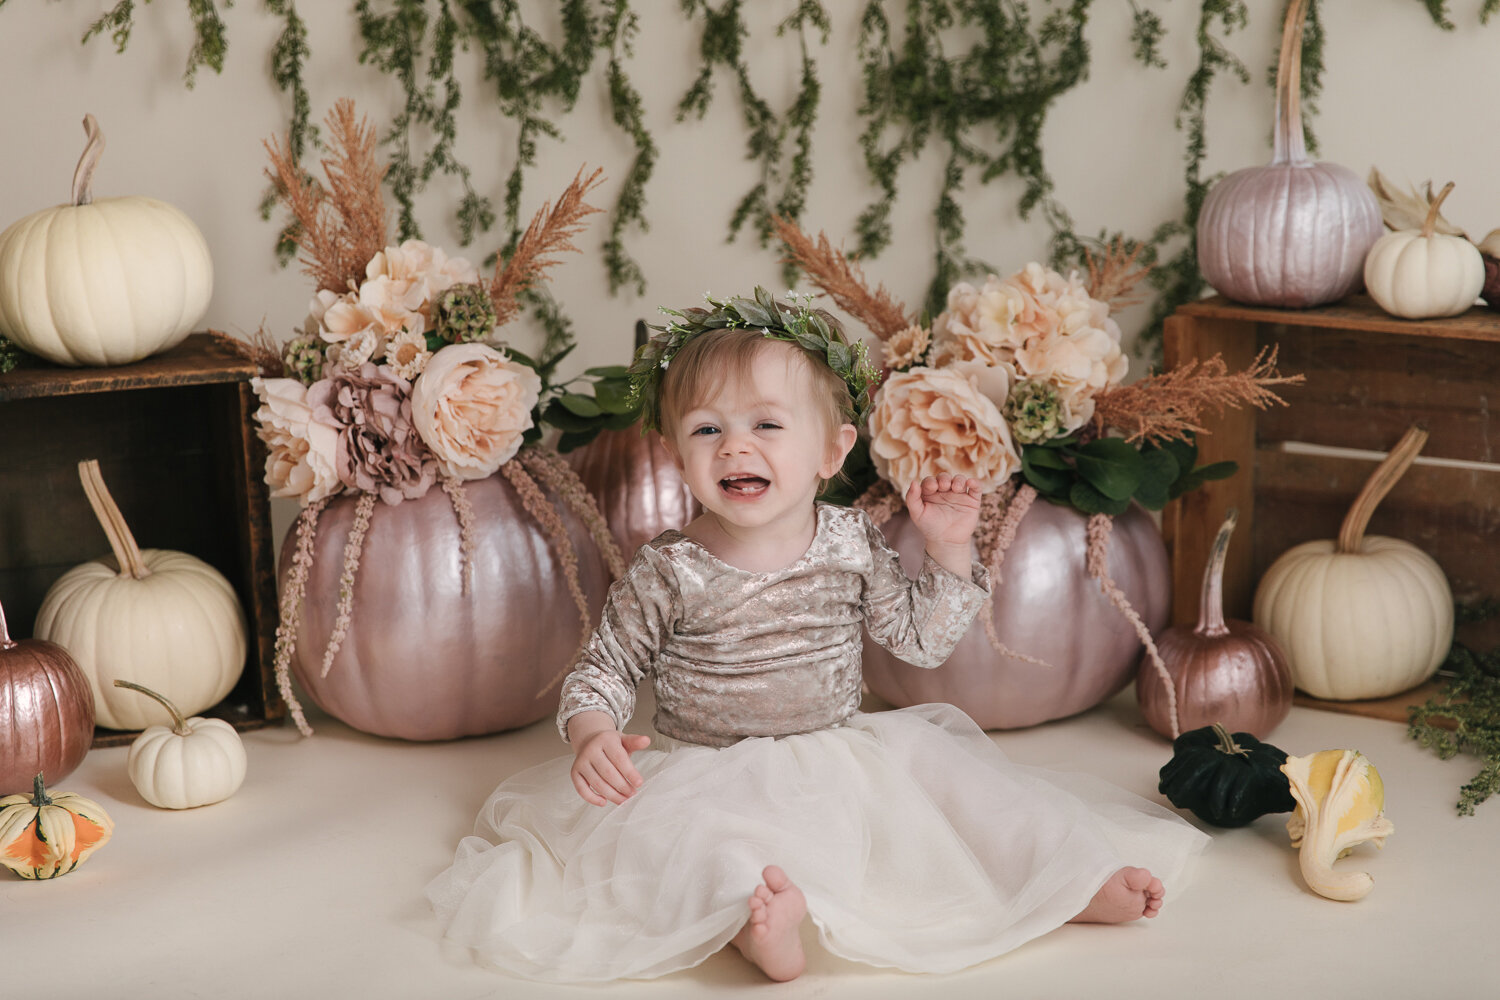 Baby_Girl_Birthday_Session_in_Studio_Smash_and_Splash_Photos_Pink_and_Cream_Little_Pumpkin_Theme_Baby_Girl_Frist_Birthday_Shoot_October_and_Fall_Soft_Color_Pallet_by_Baby_Photographer_Christie_Leigh_Photo_in_Cortland_Ohio-1.JPG